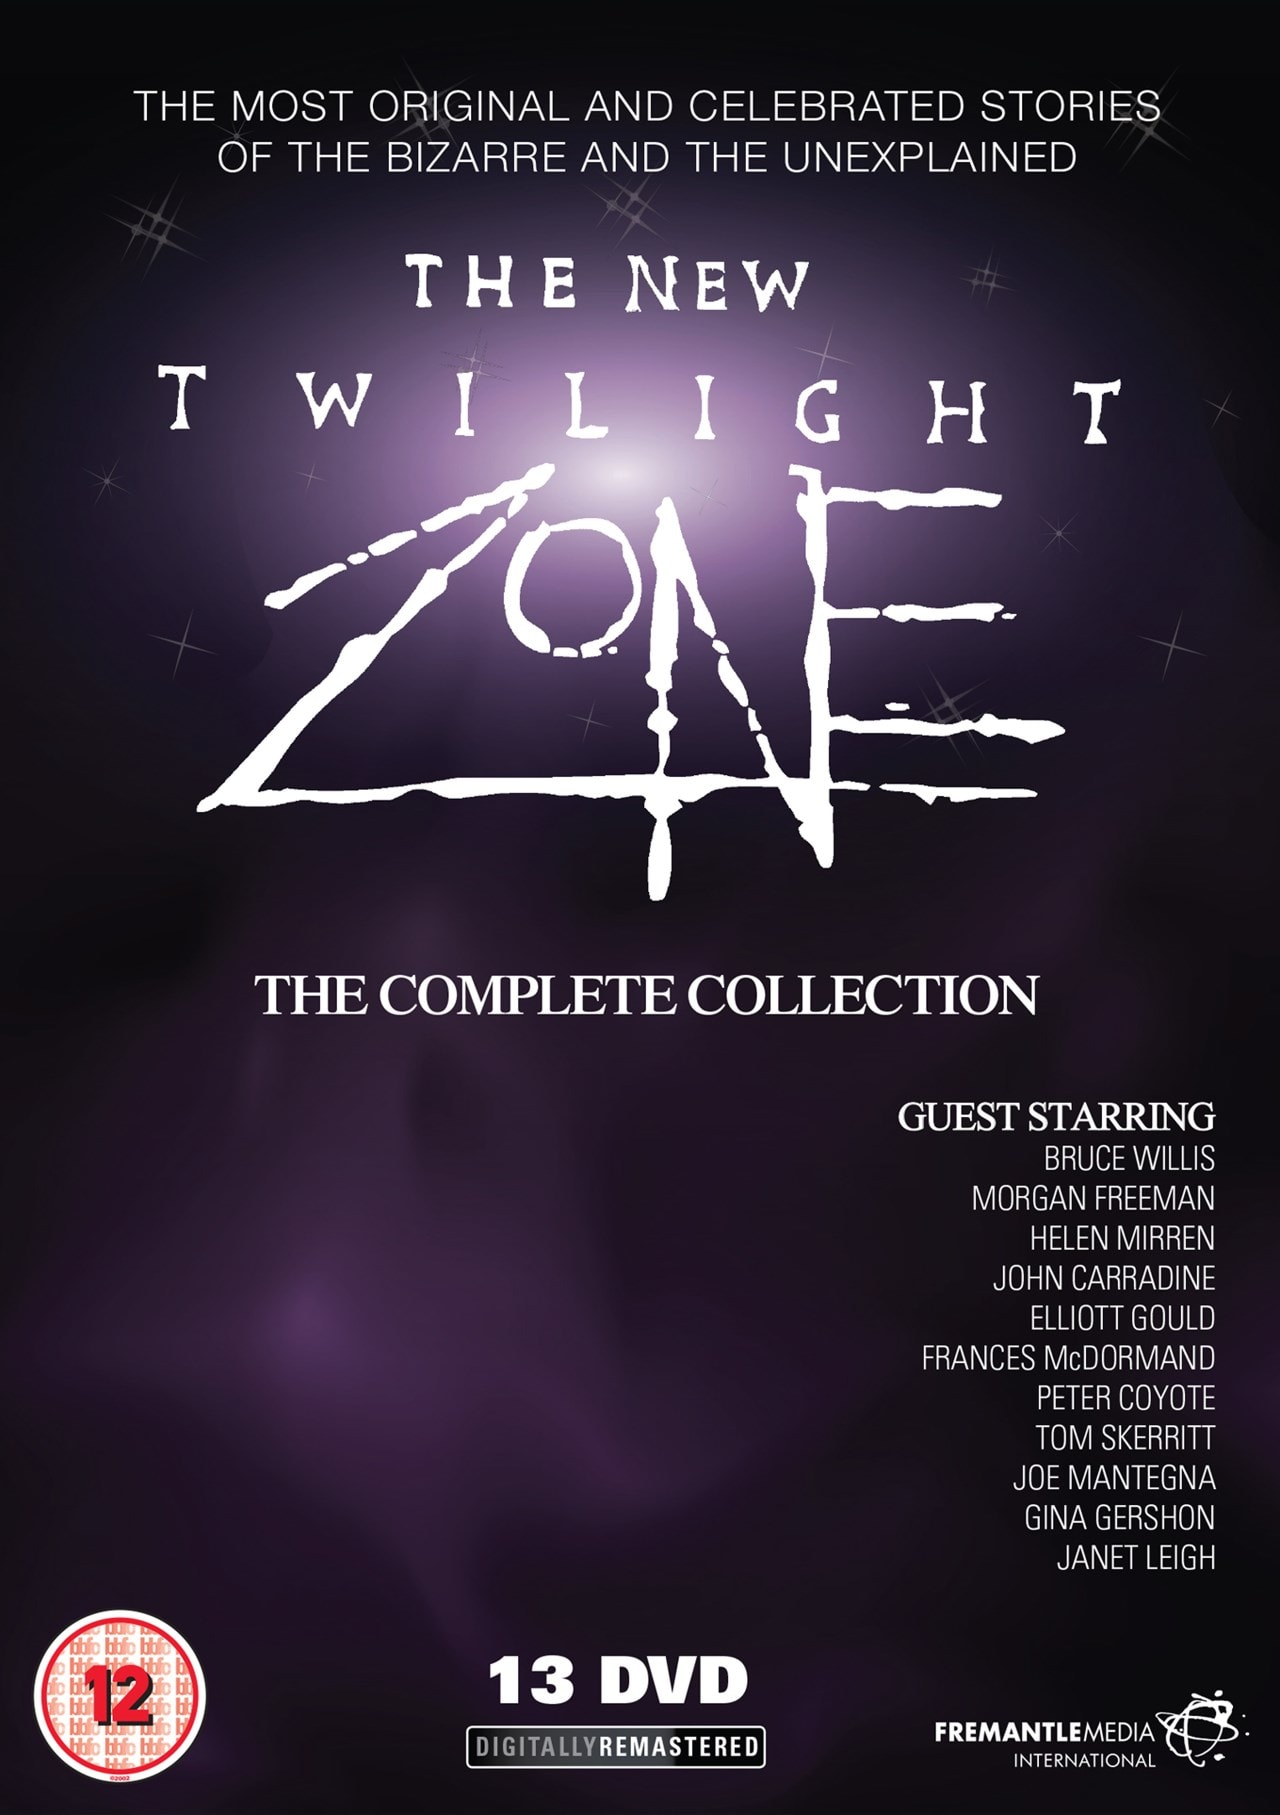 The New Twilight Zone: The Complete Collection - 1